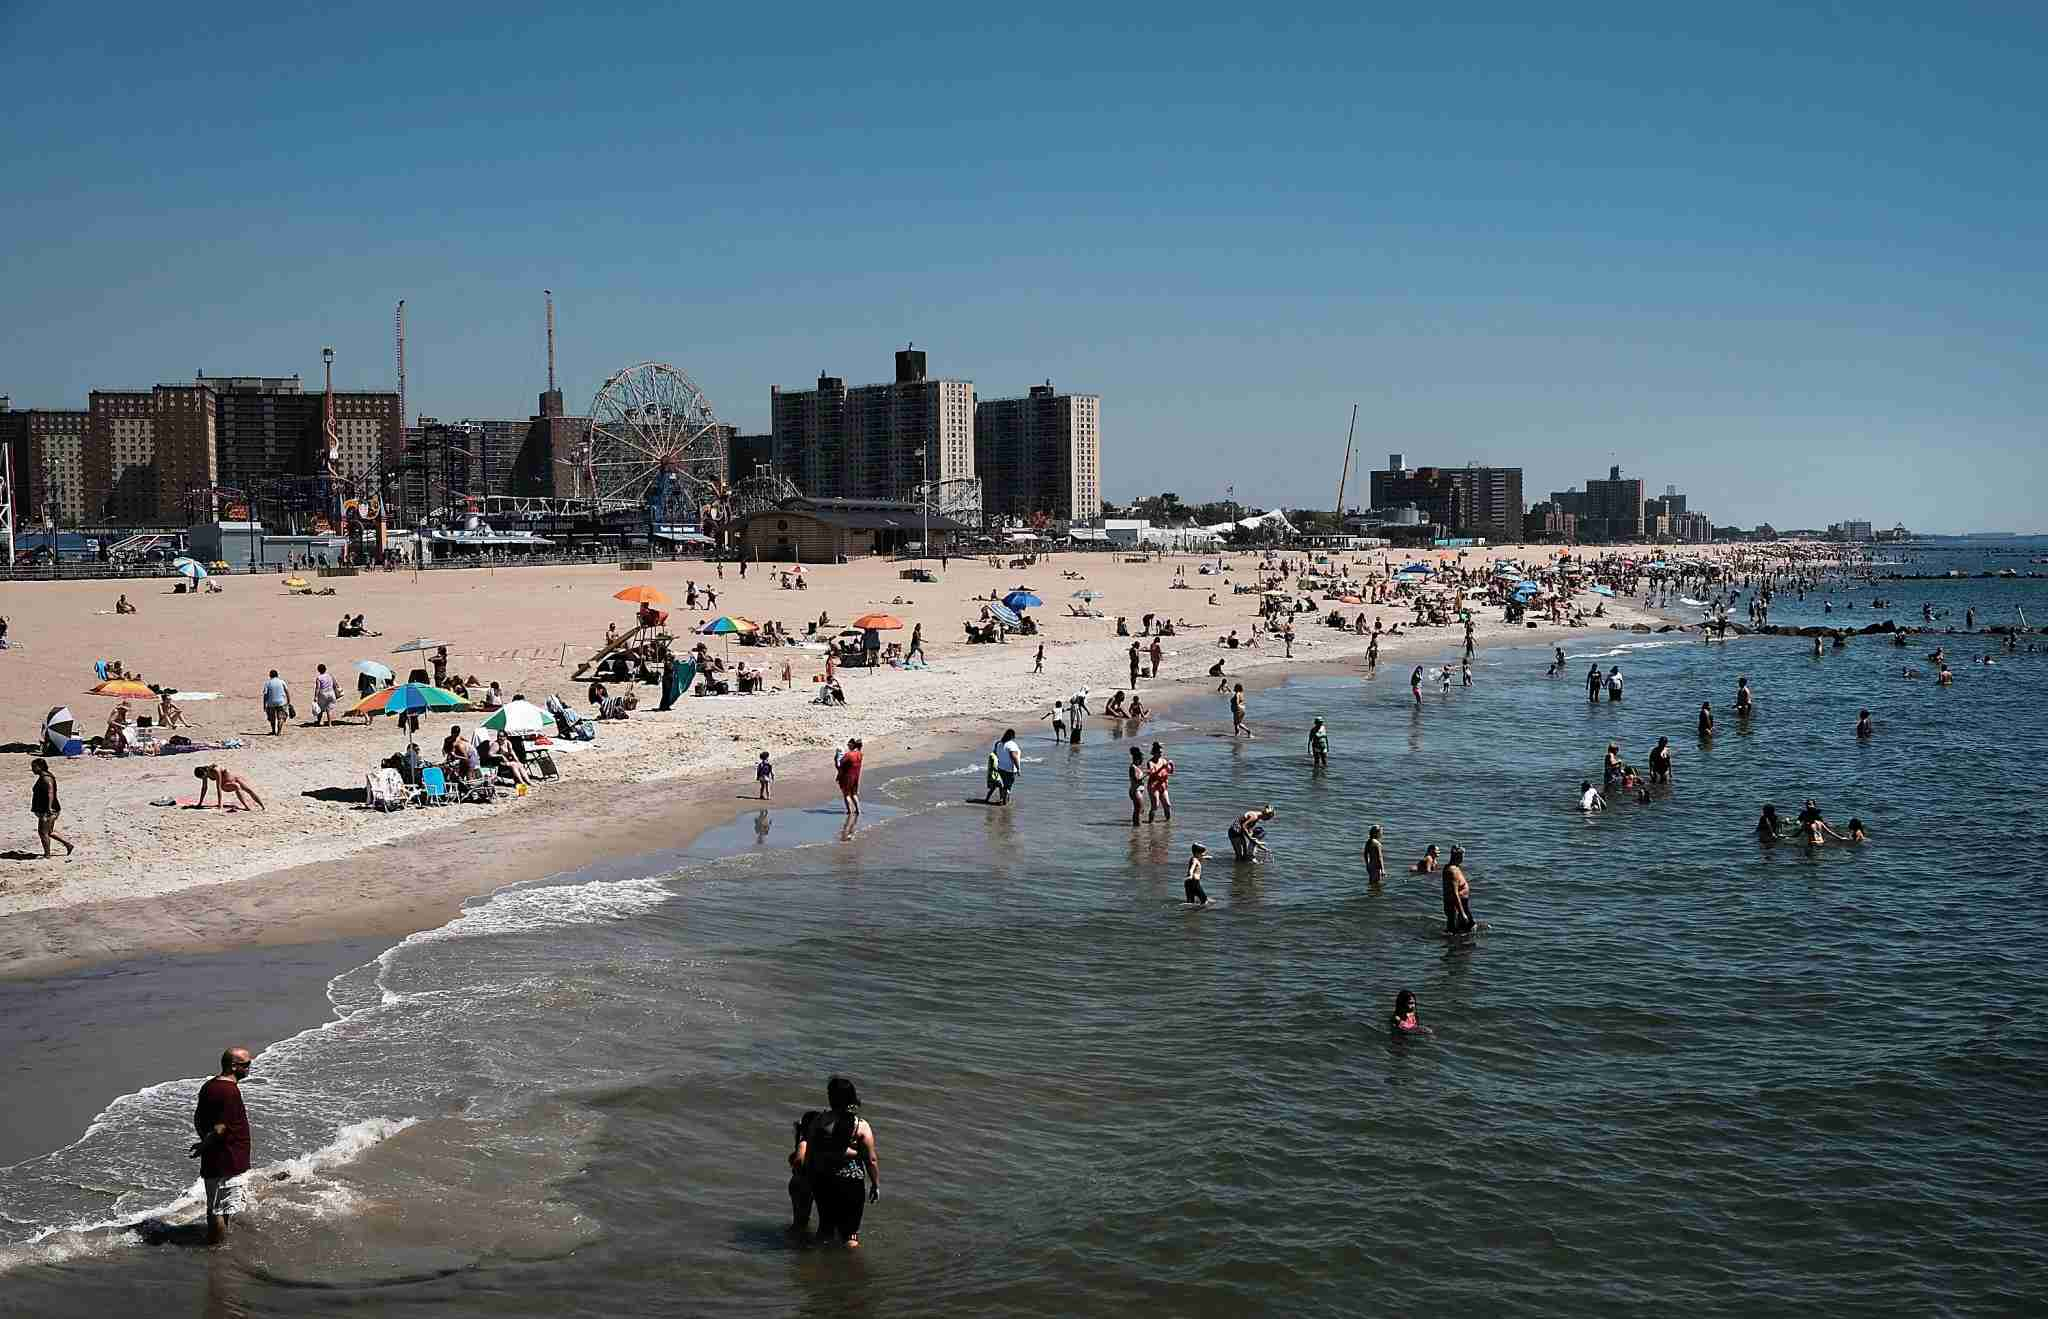 NEW YORK, NY - AUGUST 24: People swim in the ocean at Coney Island during a week of ideal summer weather in New York City on August 24, 2016 in New York City. Thousands of New Yorkers and tourists alive have been flocking to beaches, parks and public pools to take advantage of the last weeks of summer. (Photo by Spencer Platt/Getty Images)